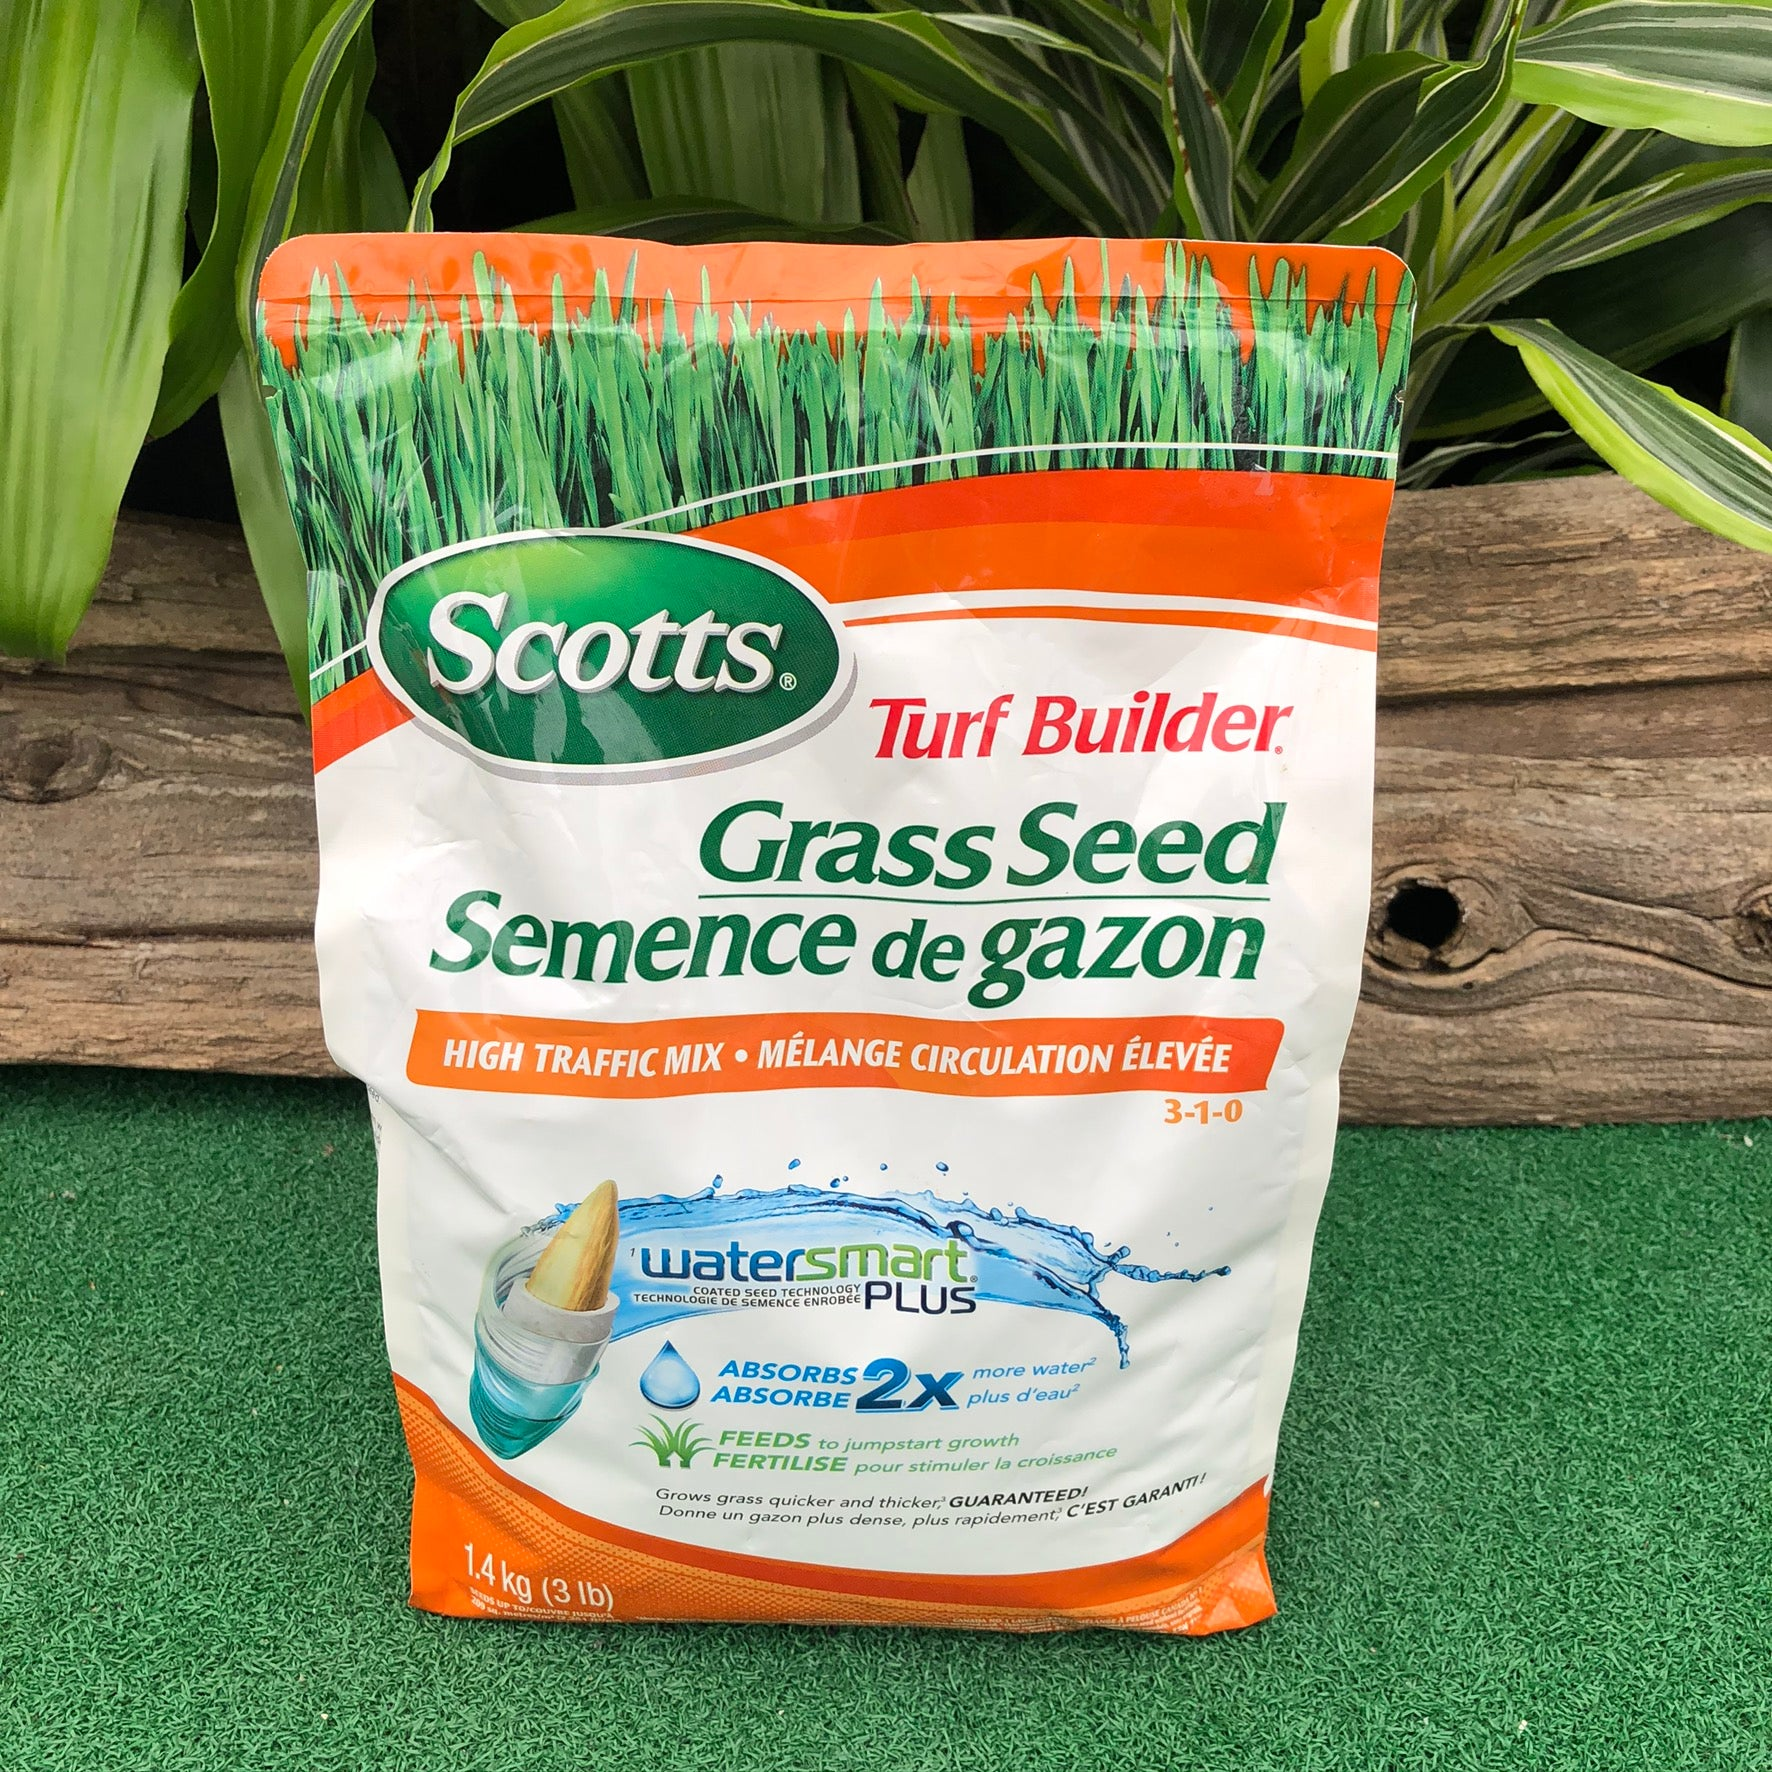 Turf Builder Grass Seed High Traffic Mix (3-1-0) (4415577194579)